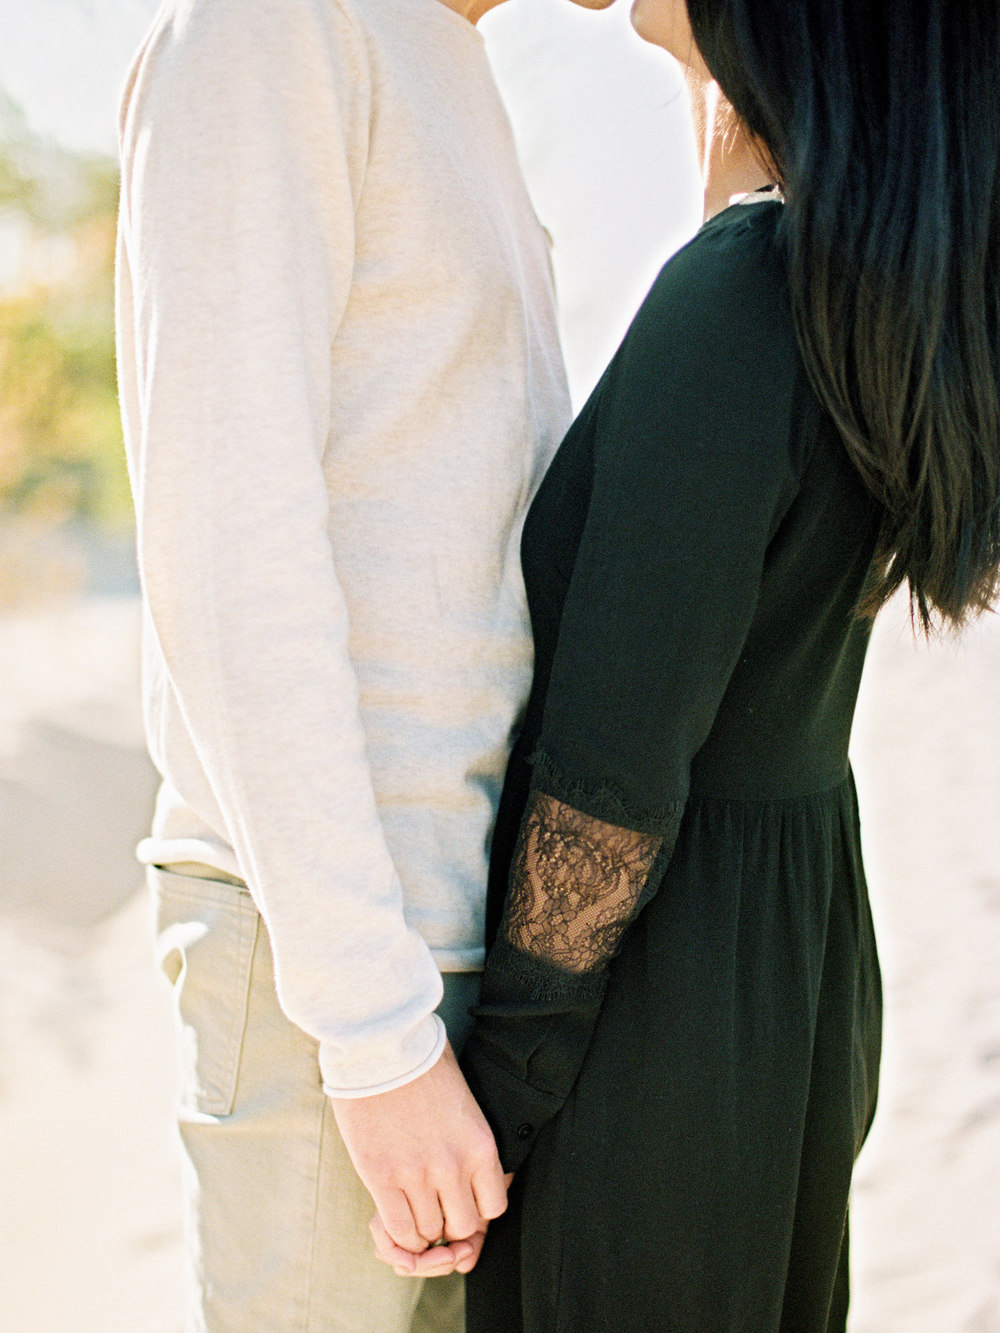 020-chicago-engagement-session.jpg